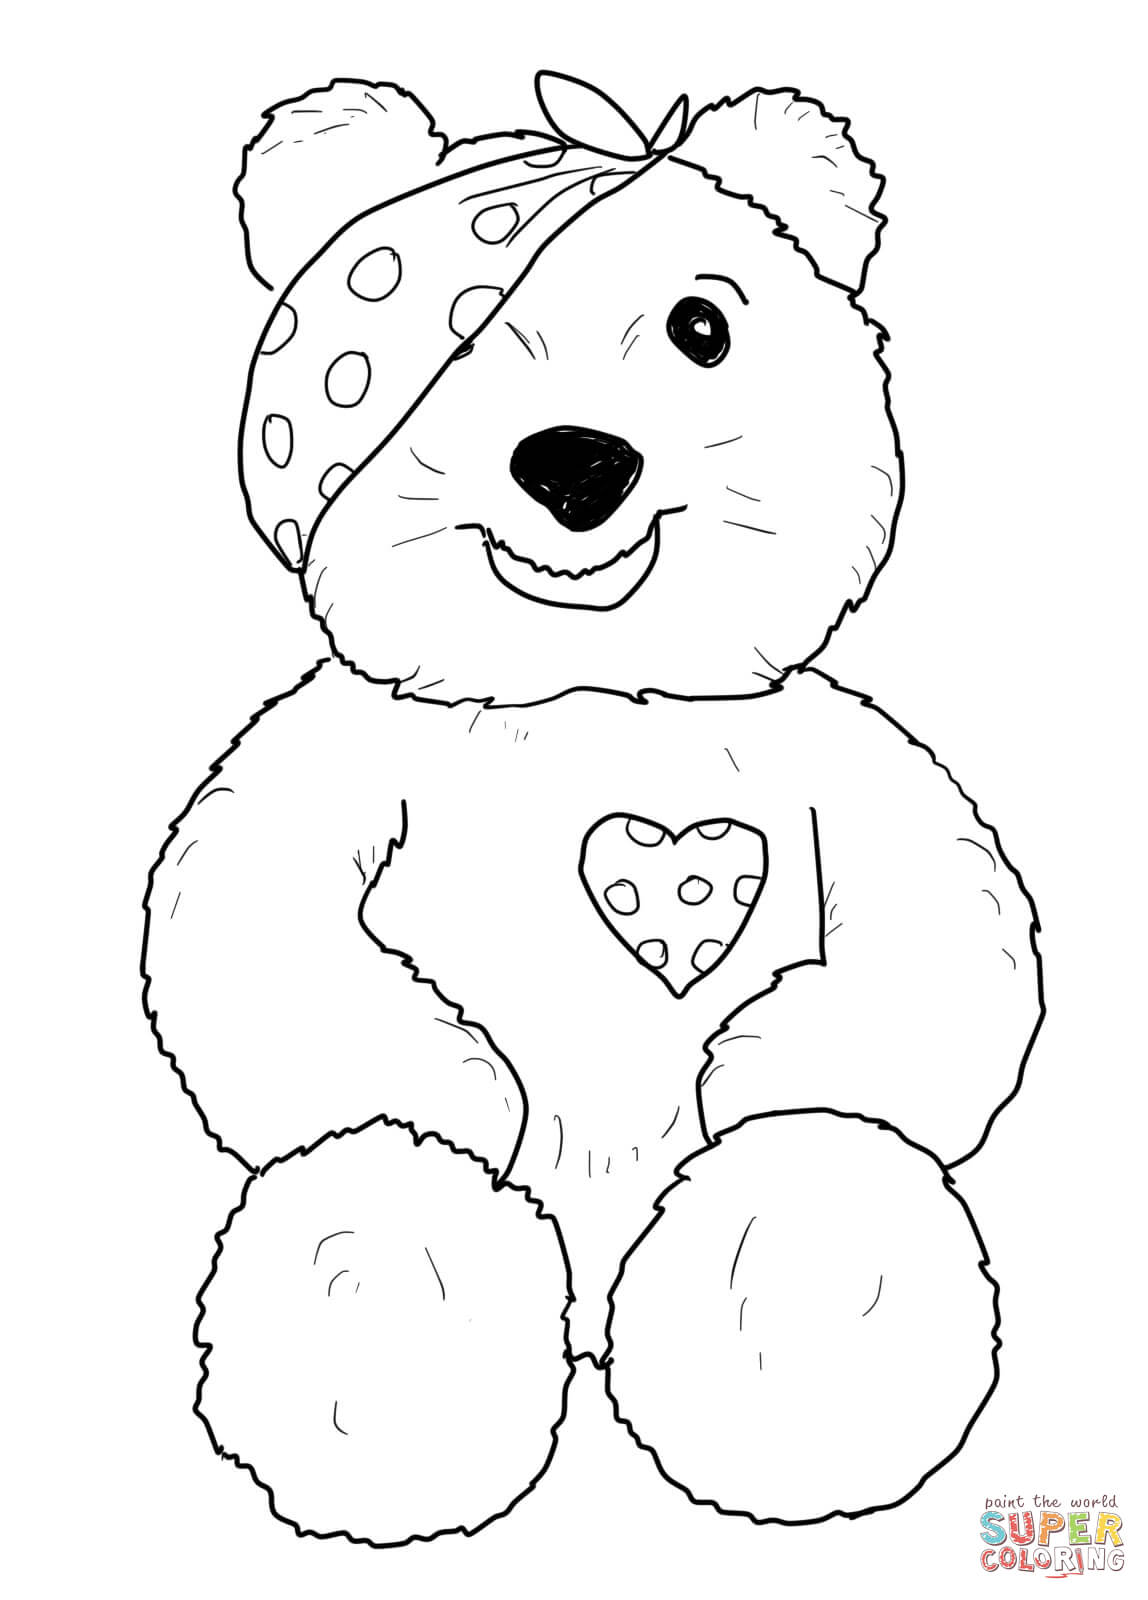 pudsey bear pictures to colour in children in need pudsey bear coloring pagetoby39s children pictures to bear in pudsey colour